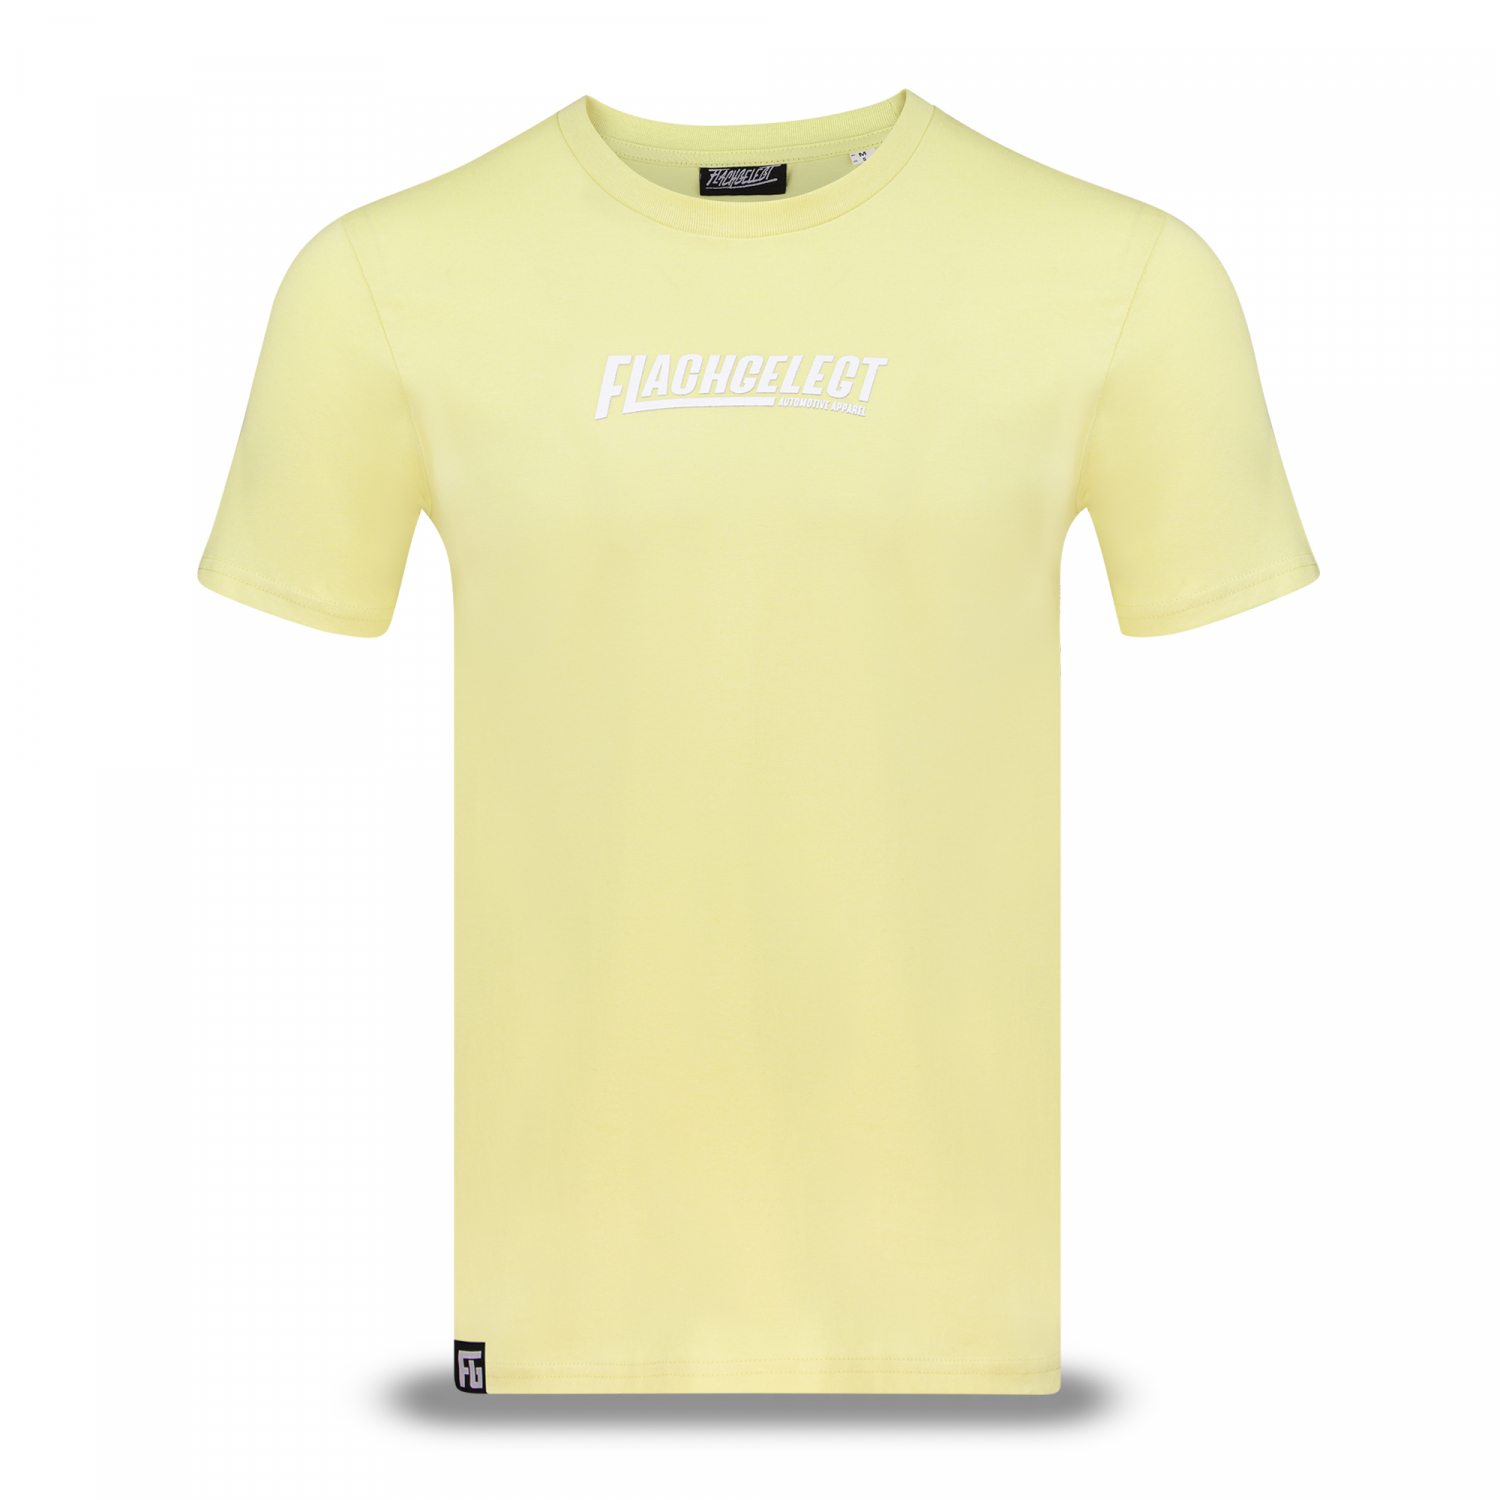 FLACHGELEGT® - YELLOW UNISEX BASIC